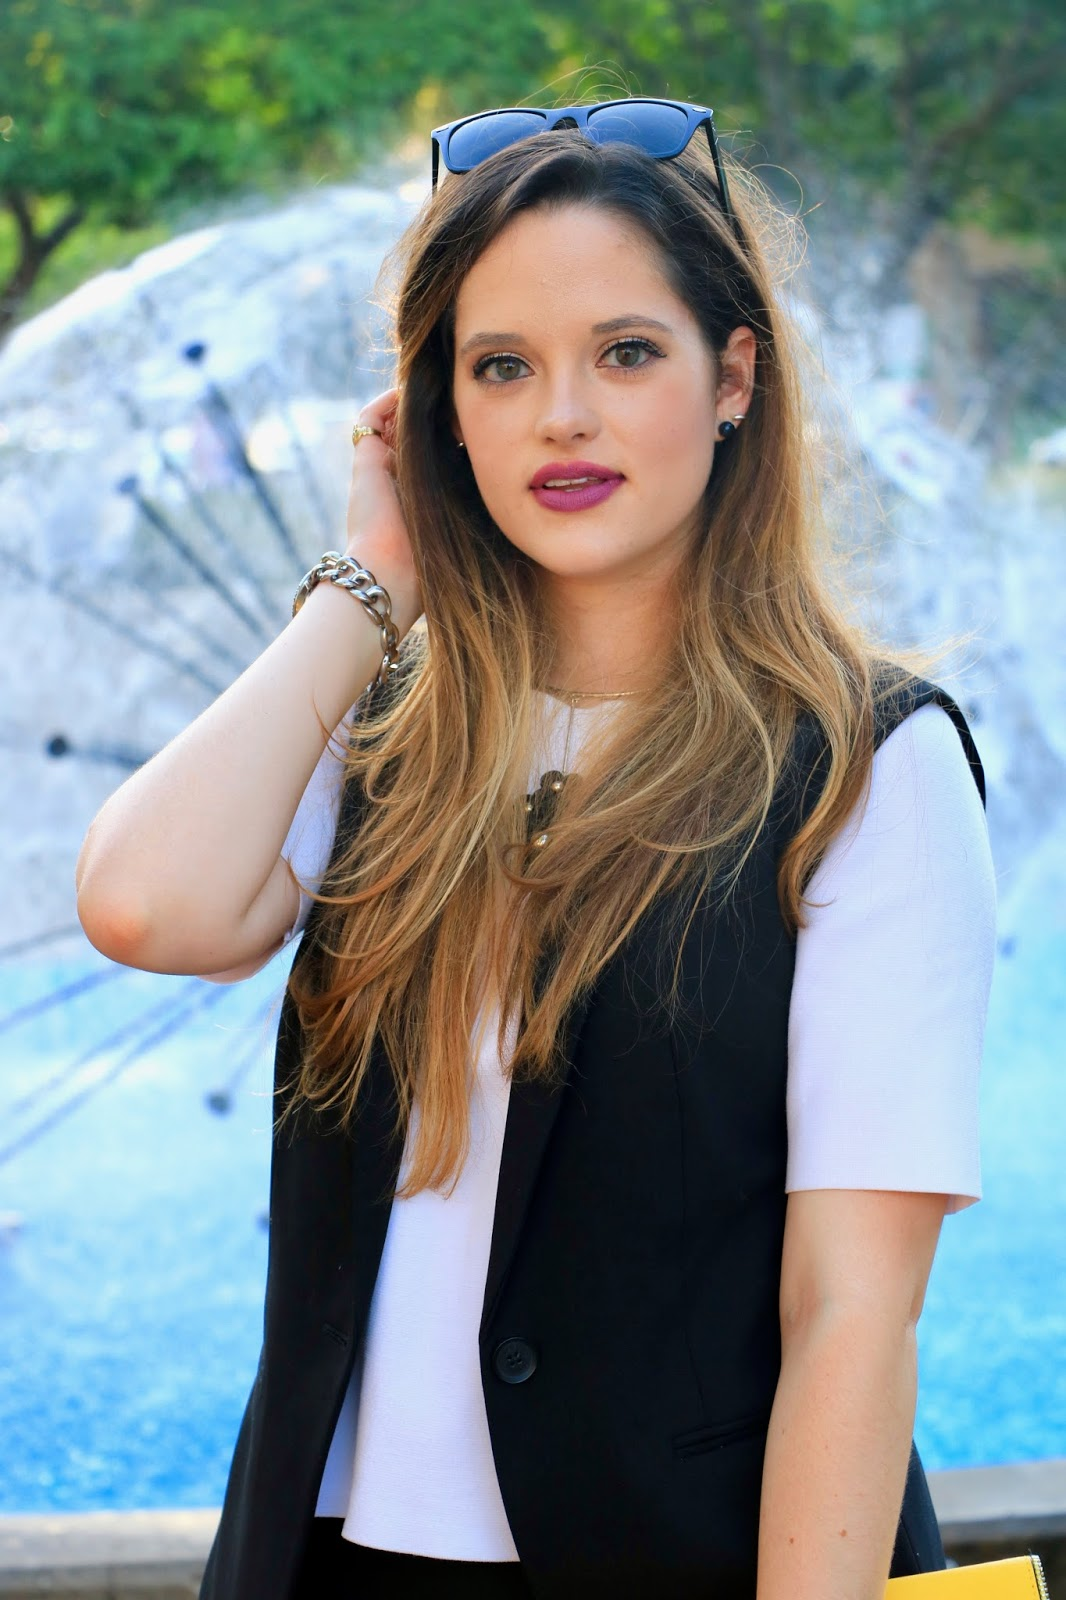 NYC fashion blogger Kathleen Harper of Kat's Fashion Fix summer work outfit ideas